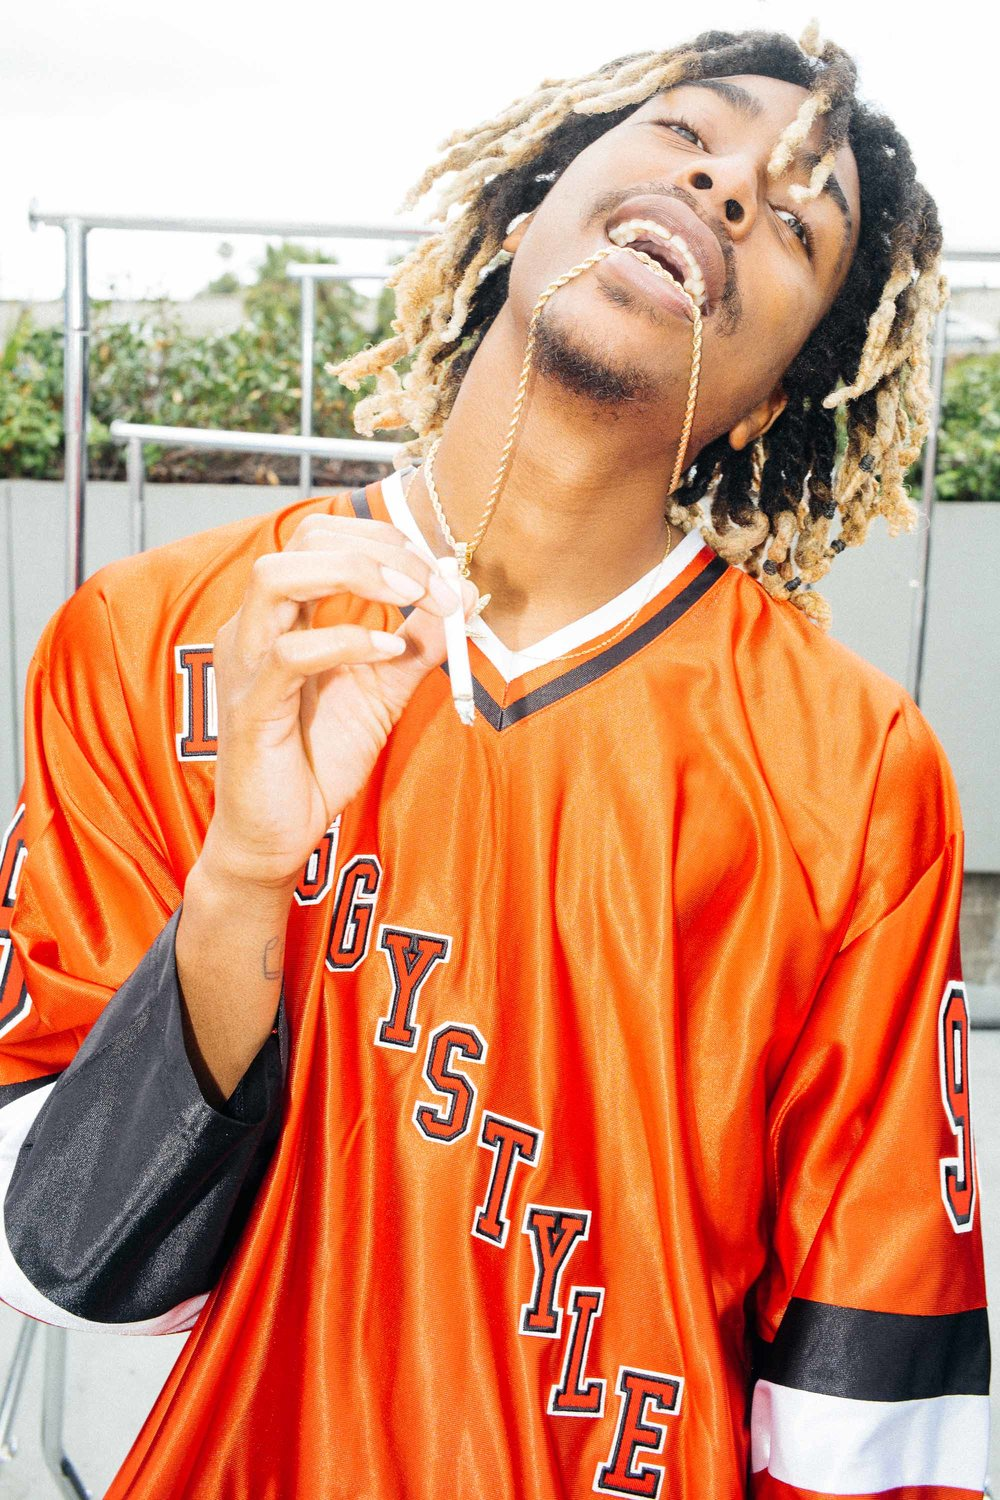 Snoop Dogg X Joyrich for MADE LA